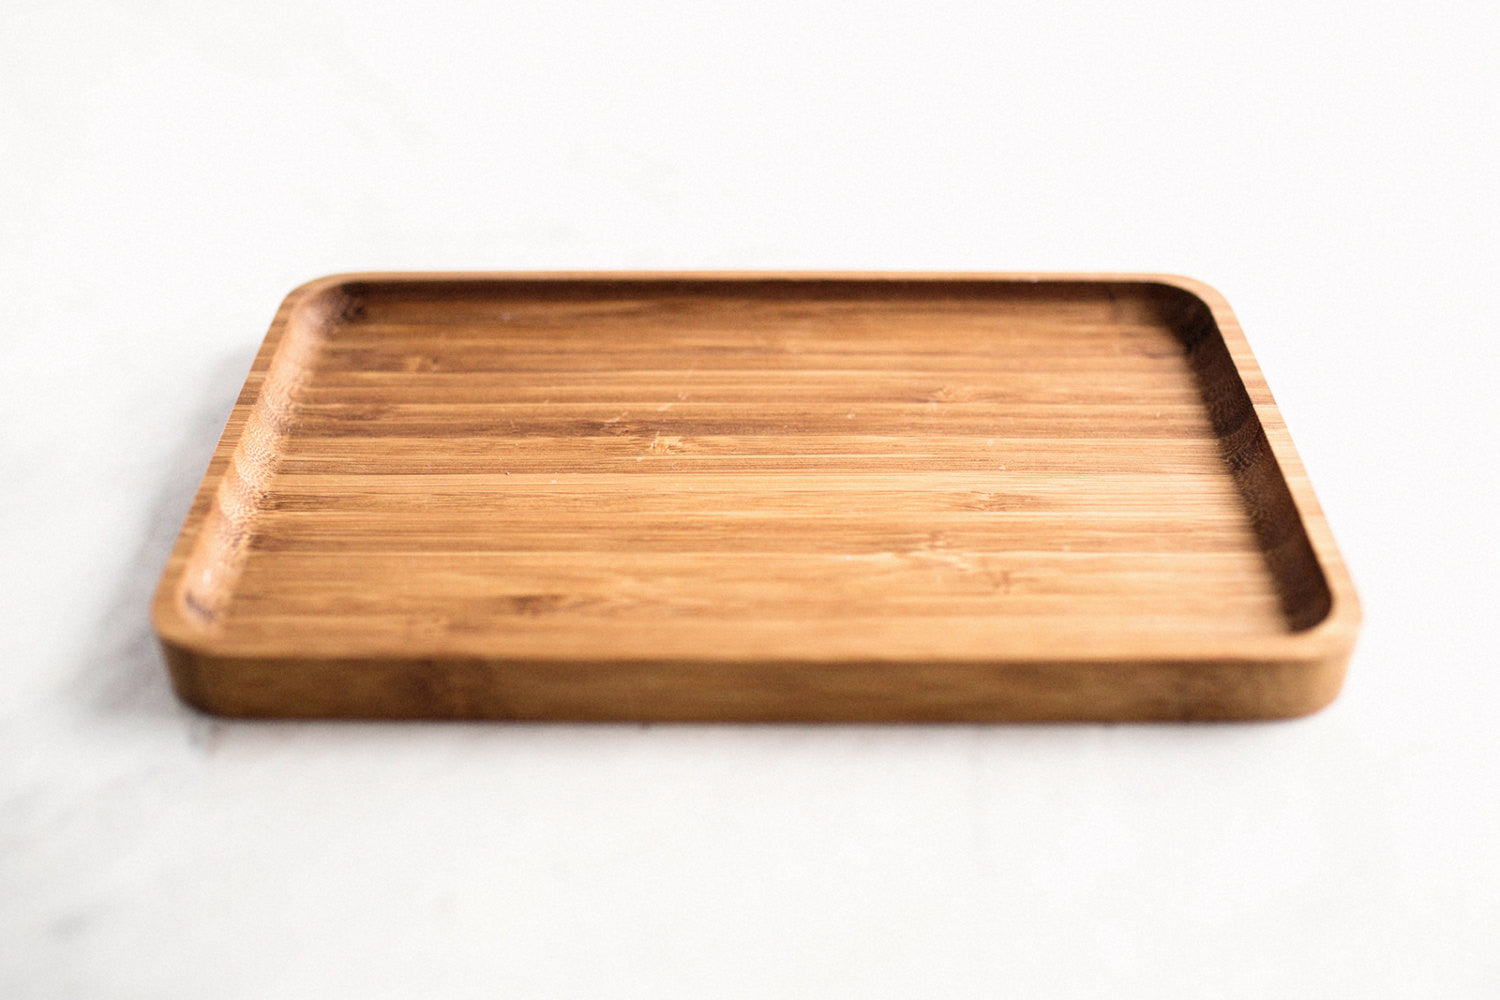 Catchall Valet Tray, Bamboo, Handcrafted, Cafe Tray, Food Safe, Handmade, Made in Canada